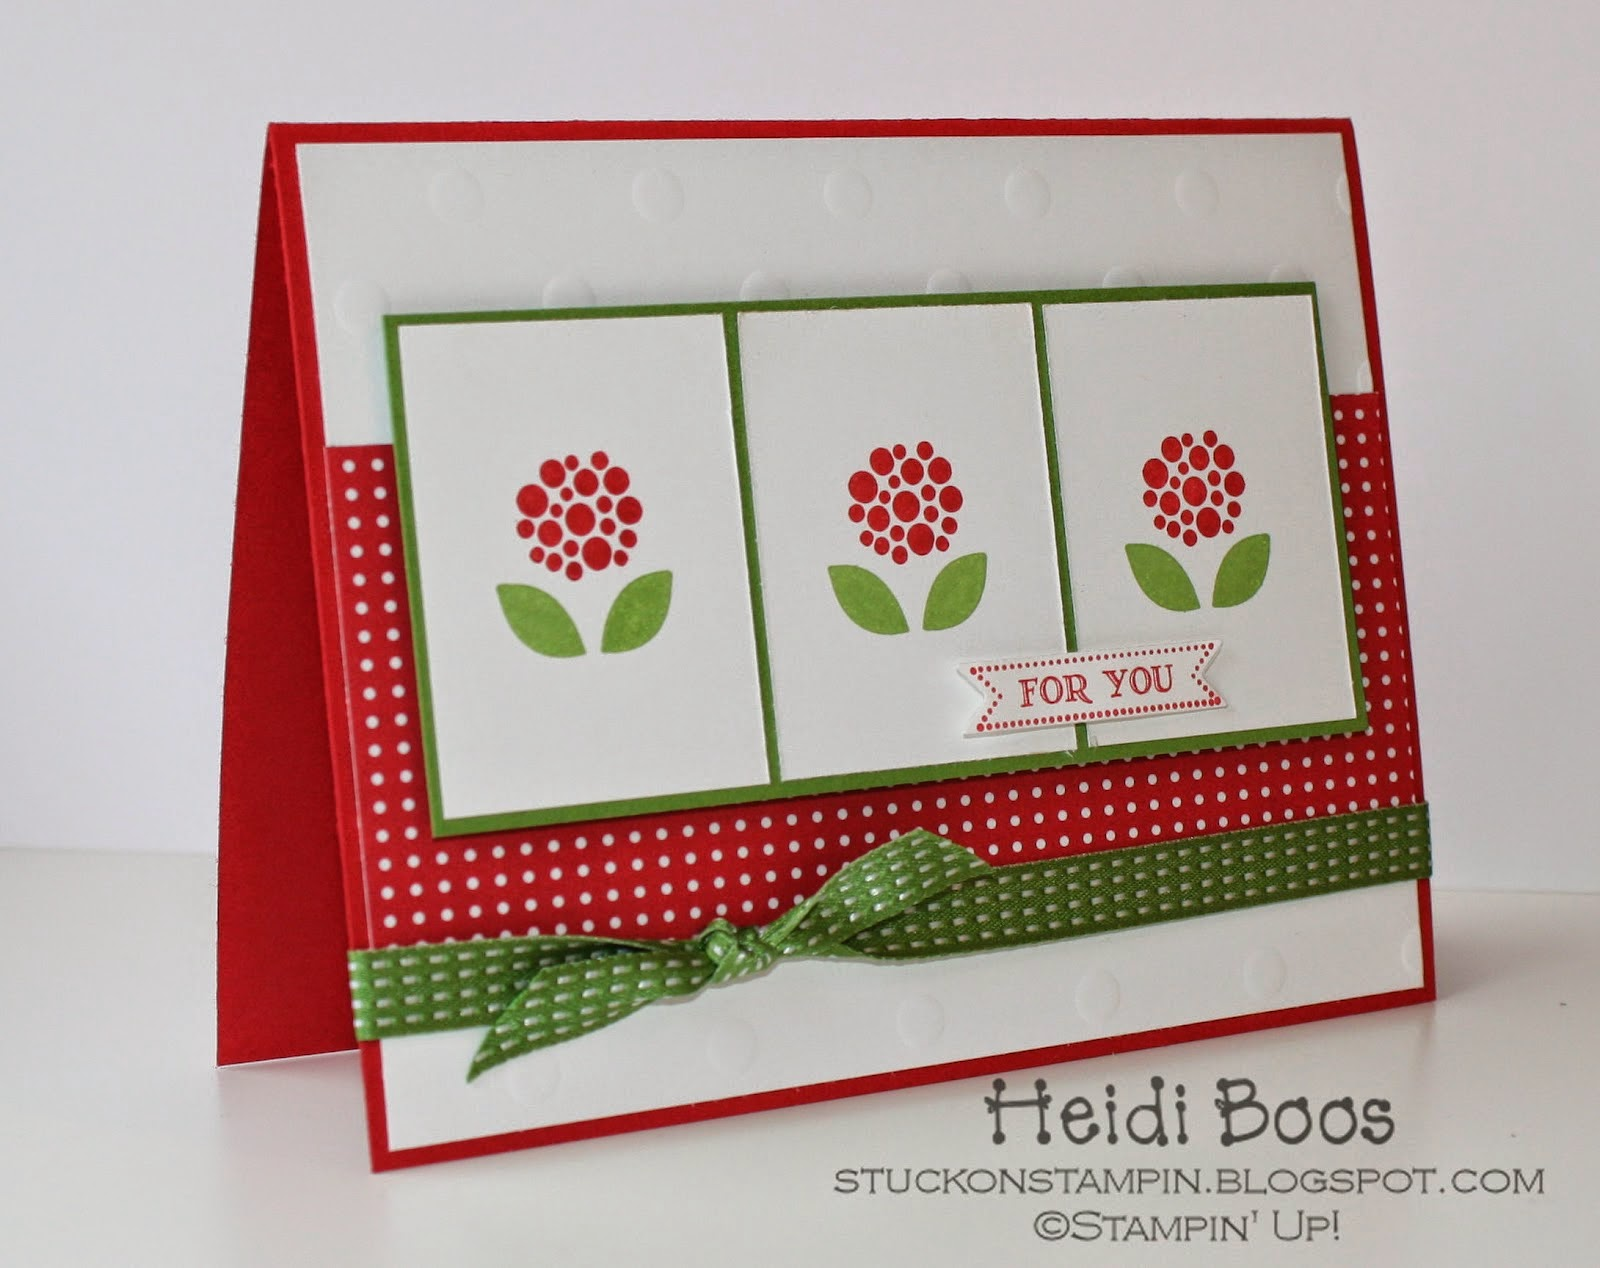 http://stuckonstampin.blogspot.com/2012/05/polka-dot-power-pp96.html